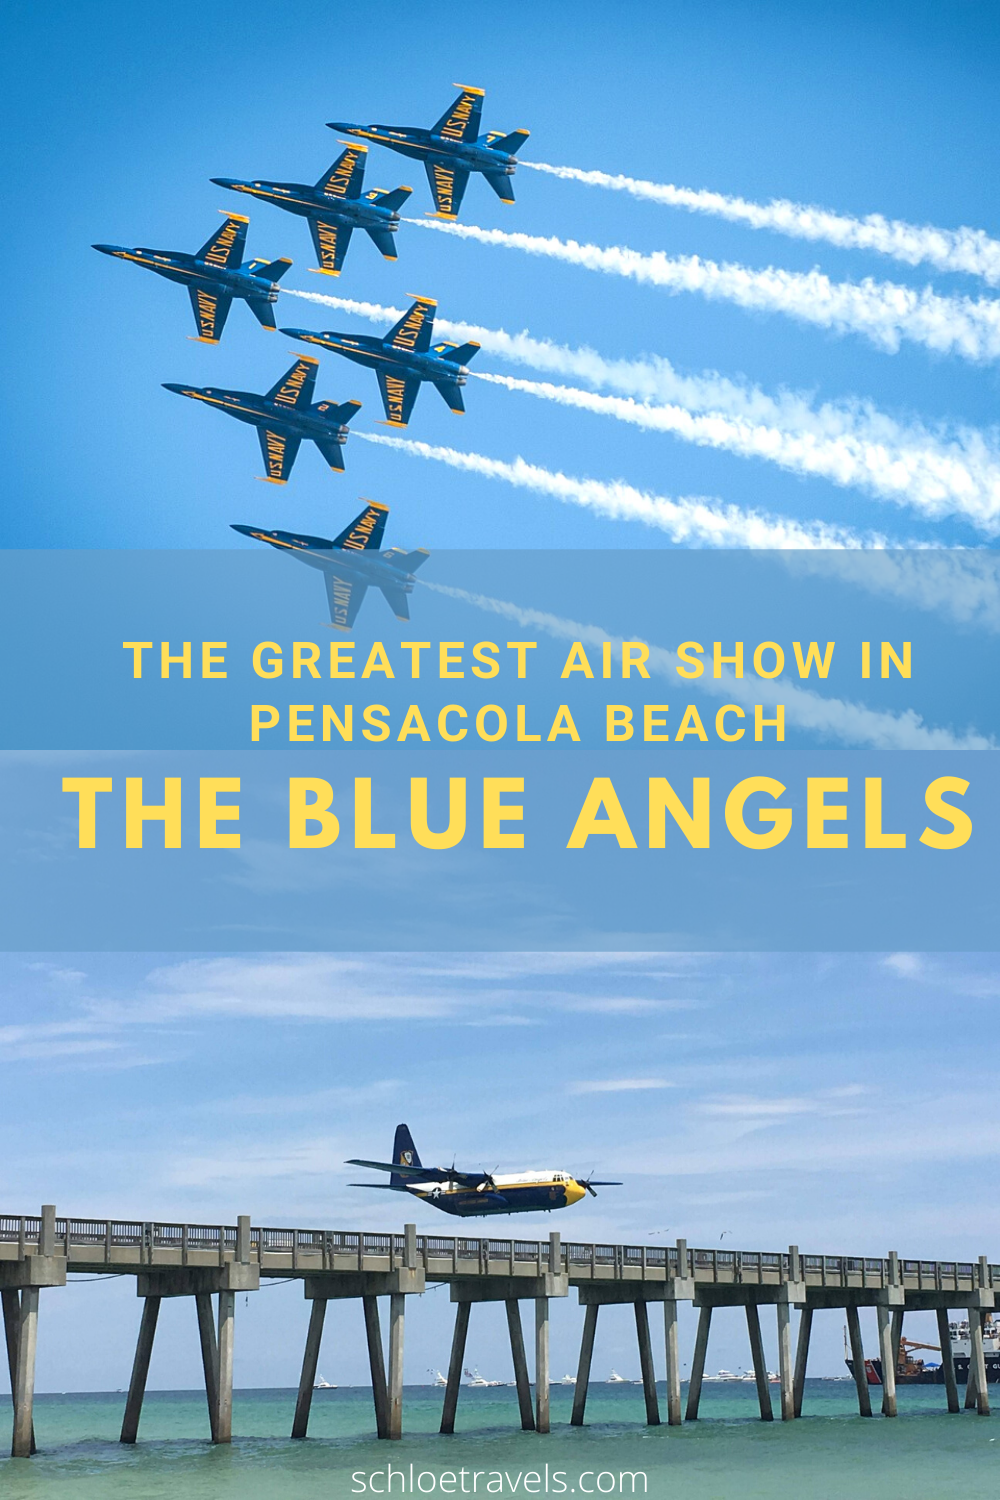 The Greatest Air Show in Pensacola Beach The Blue Angels